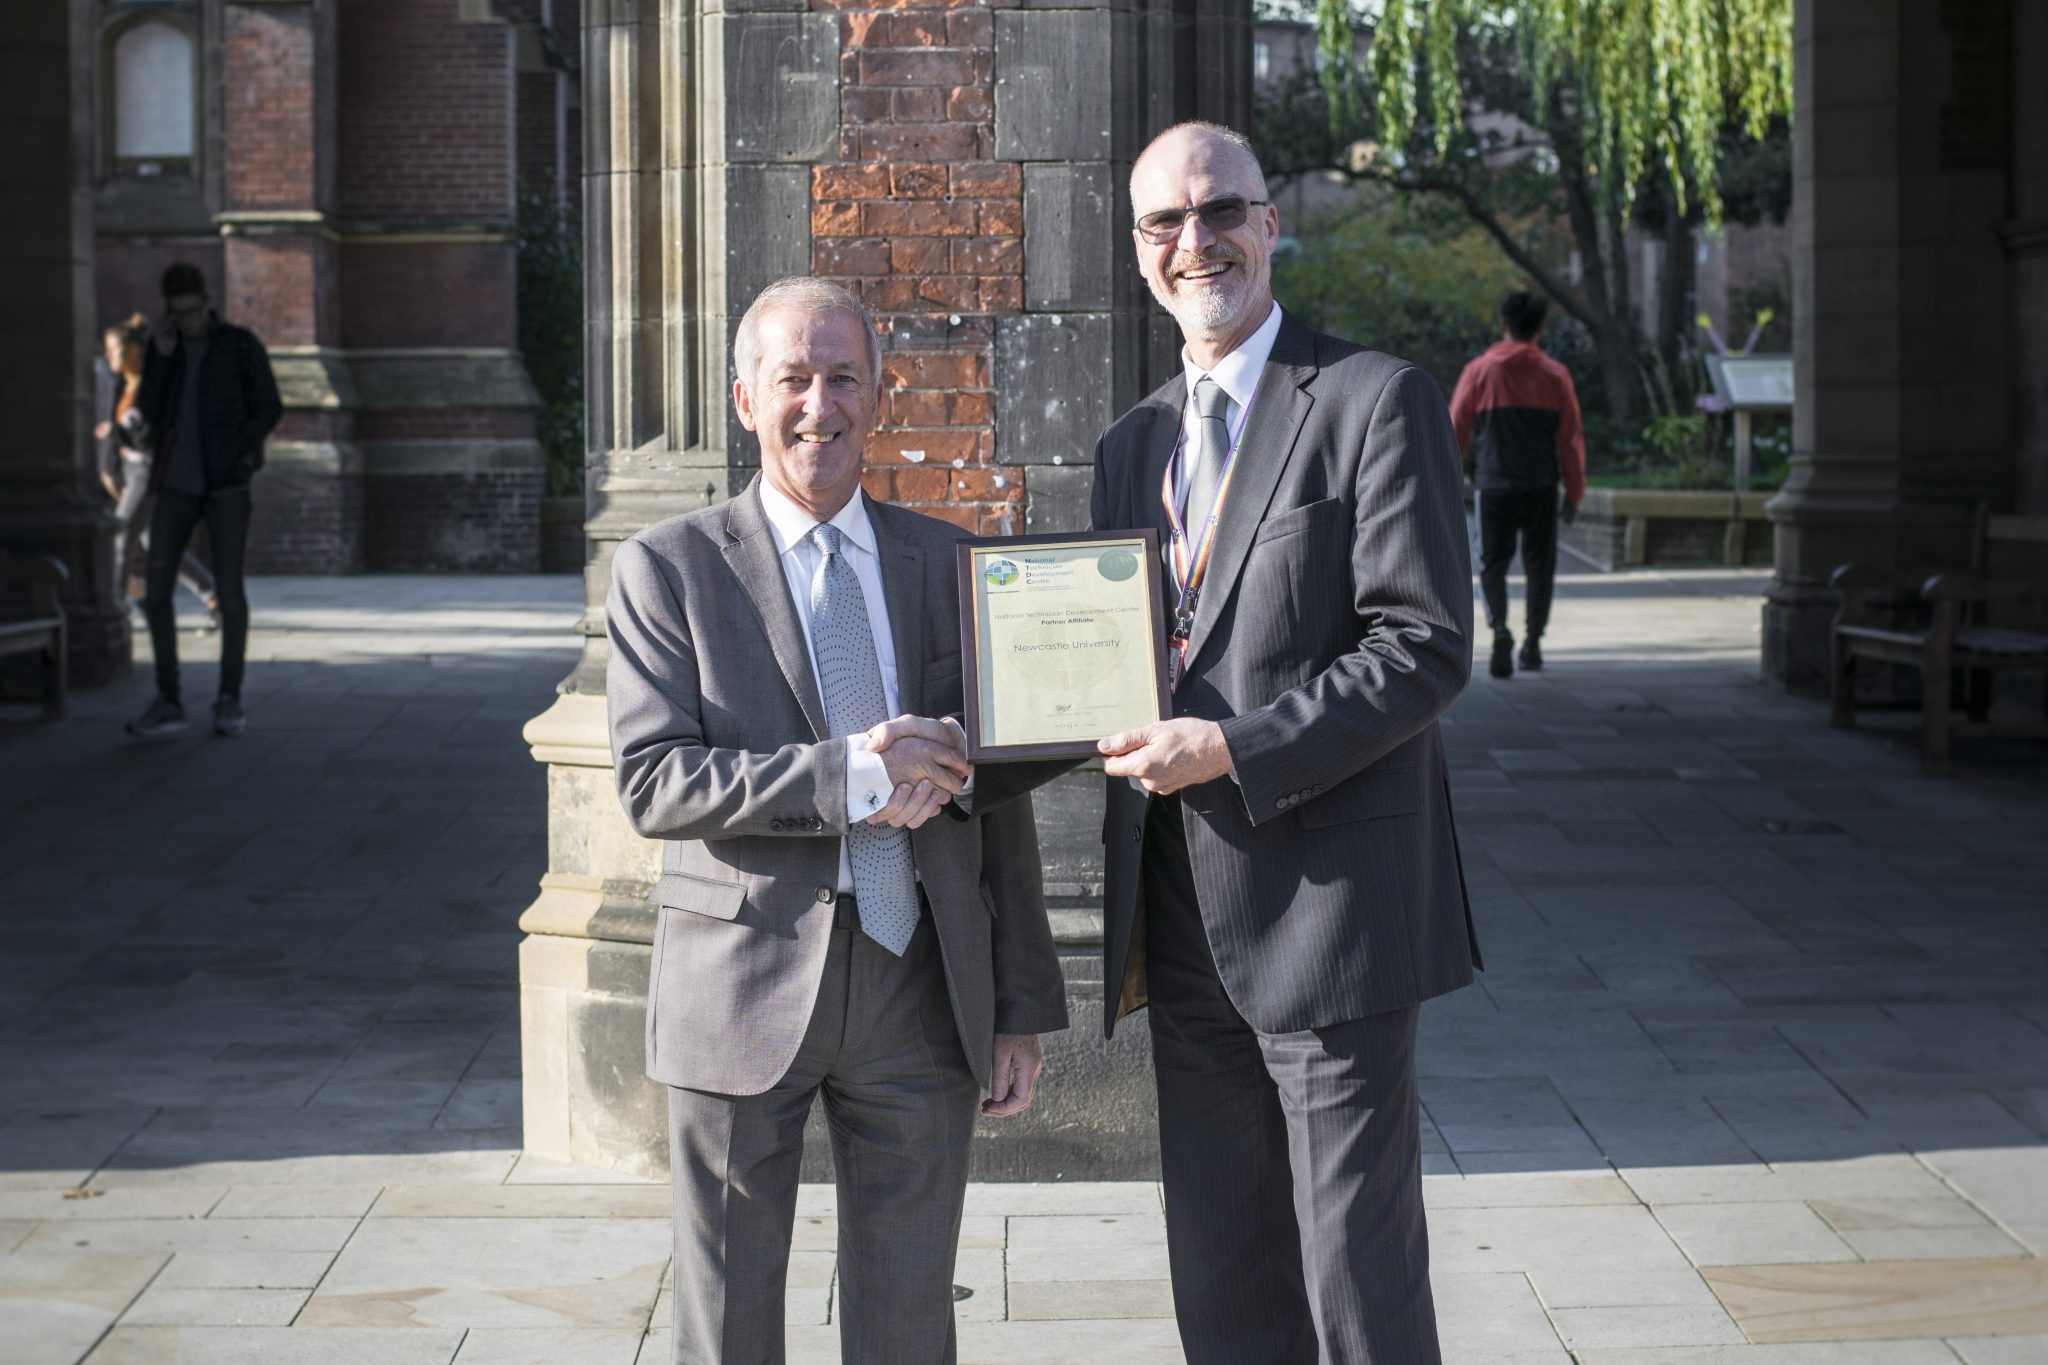 Terry Croft of NTDC Presenting Newcastle University Registrar Dr John Hogan with PA certificate